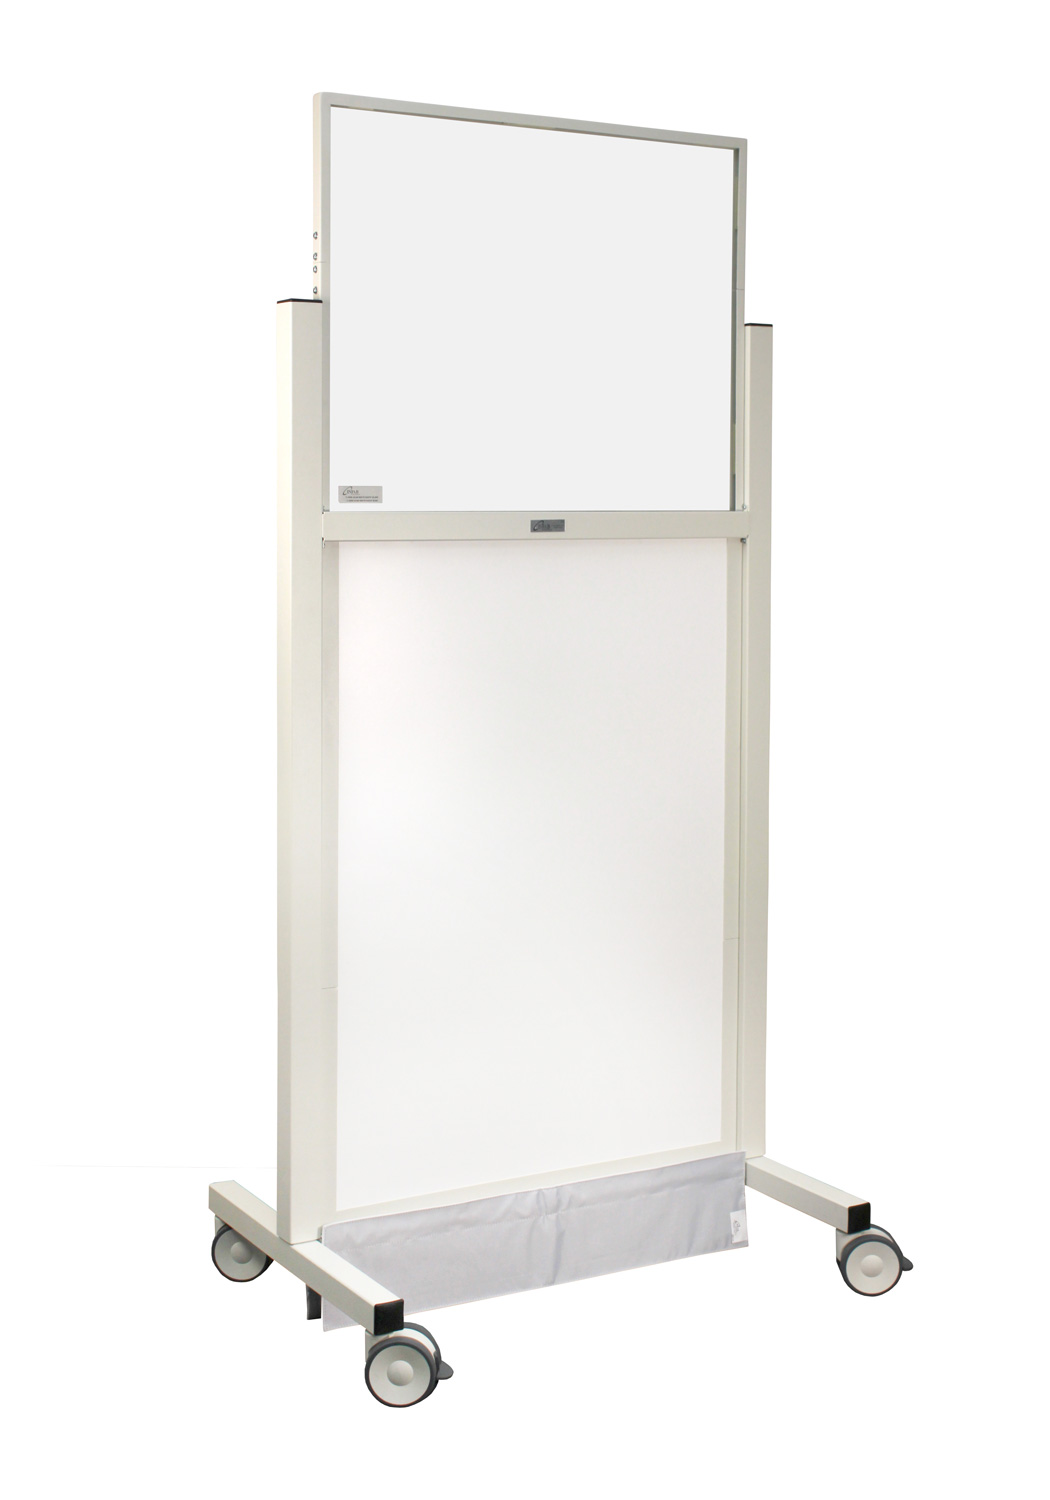 Standard X-Ray Mobile Barrier – 683460